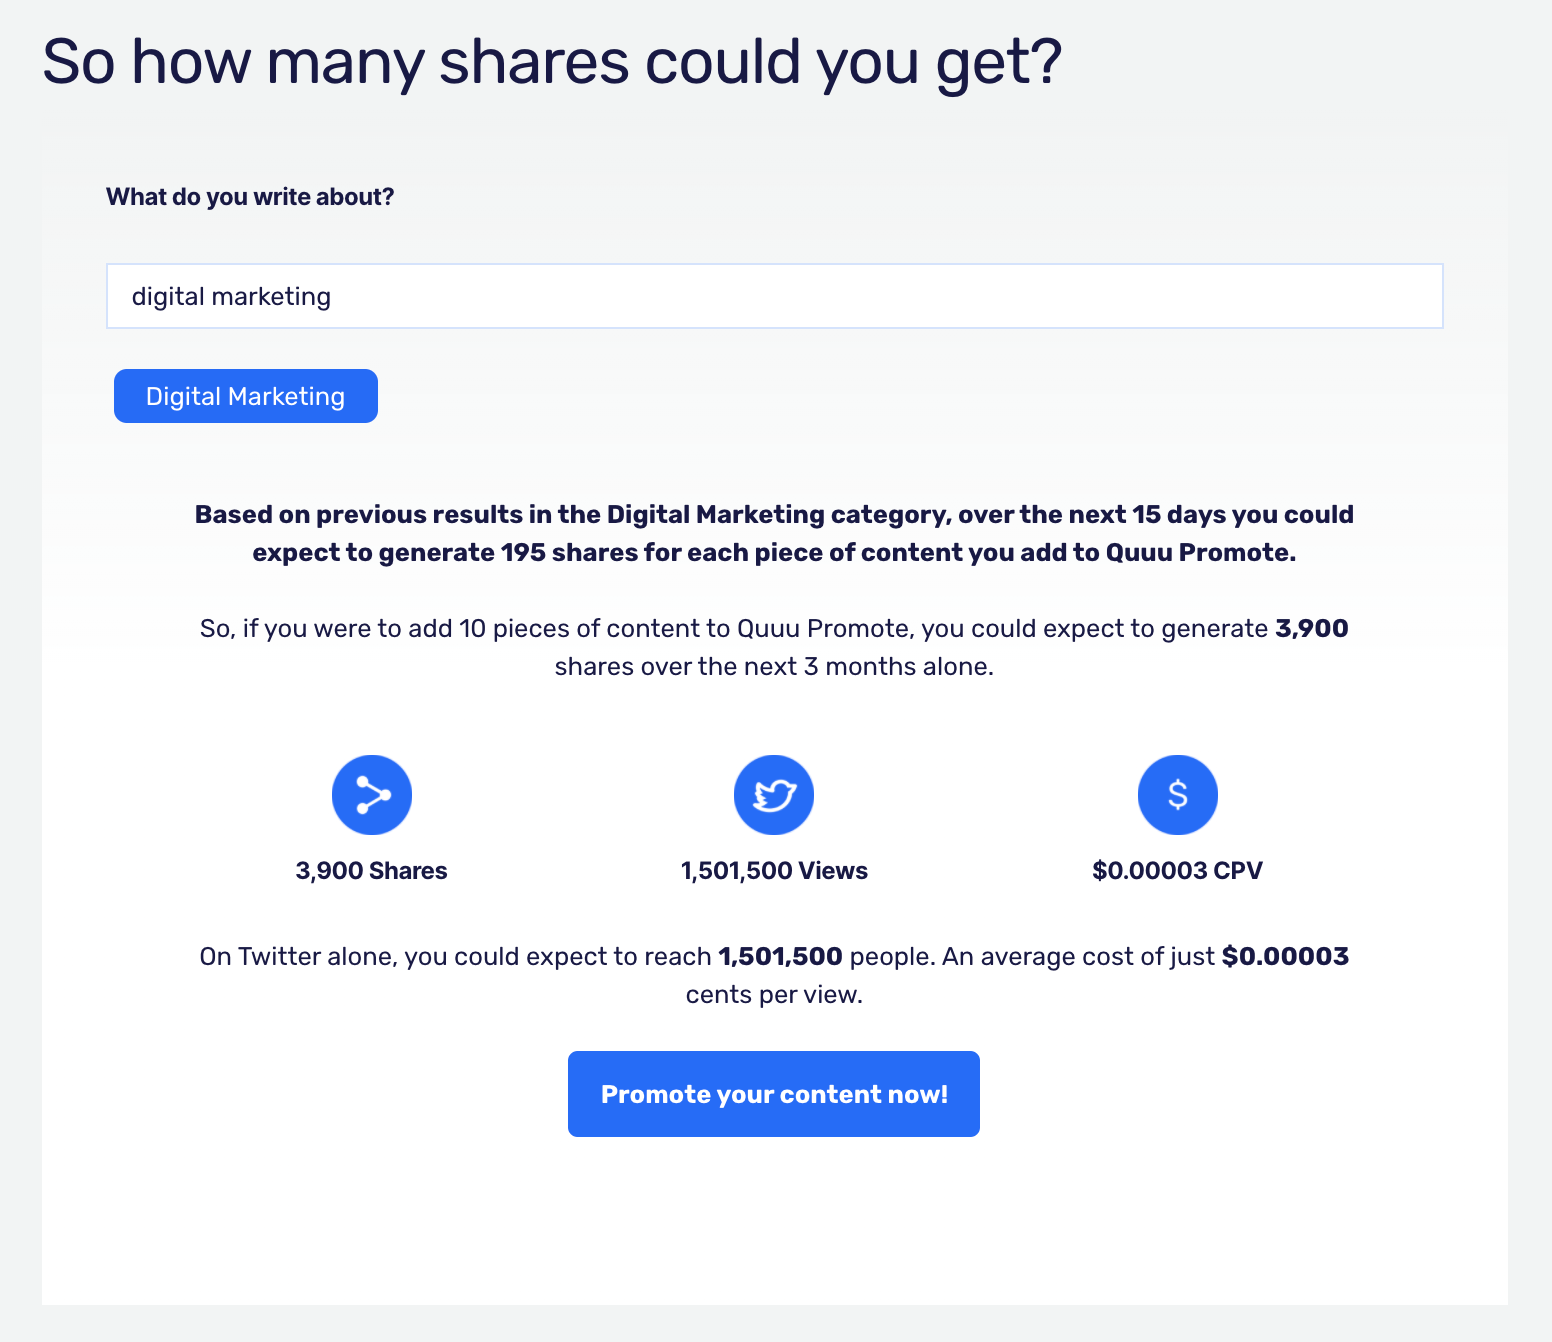 A screenshot of the Quuu Promote shares calculator for 'digital marketing'